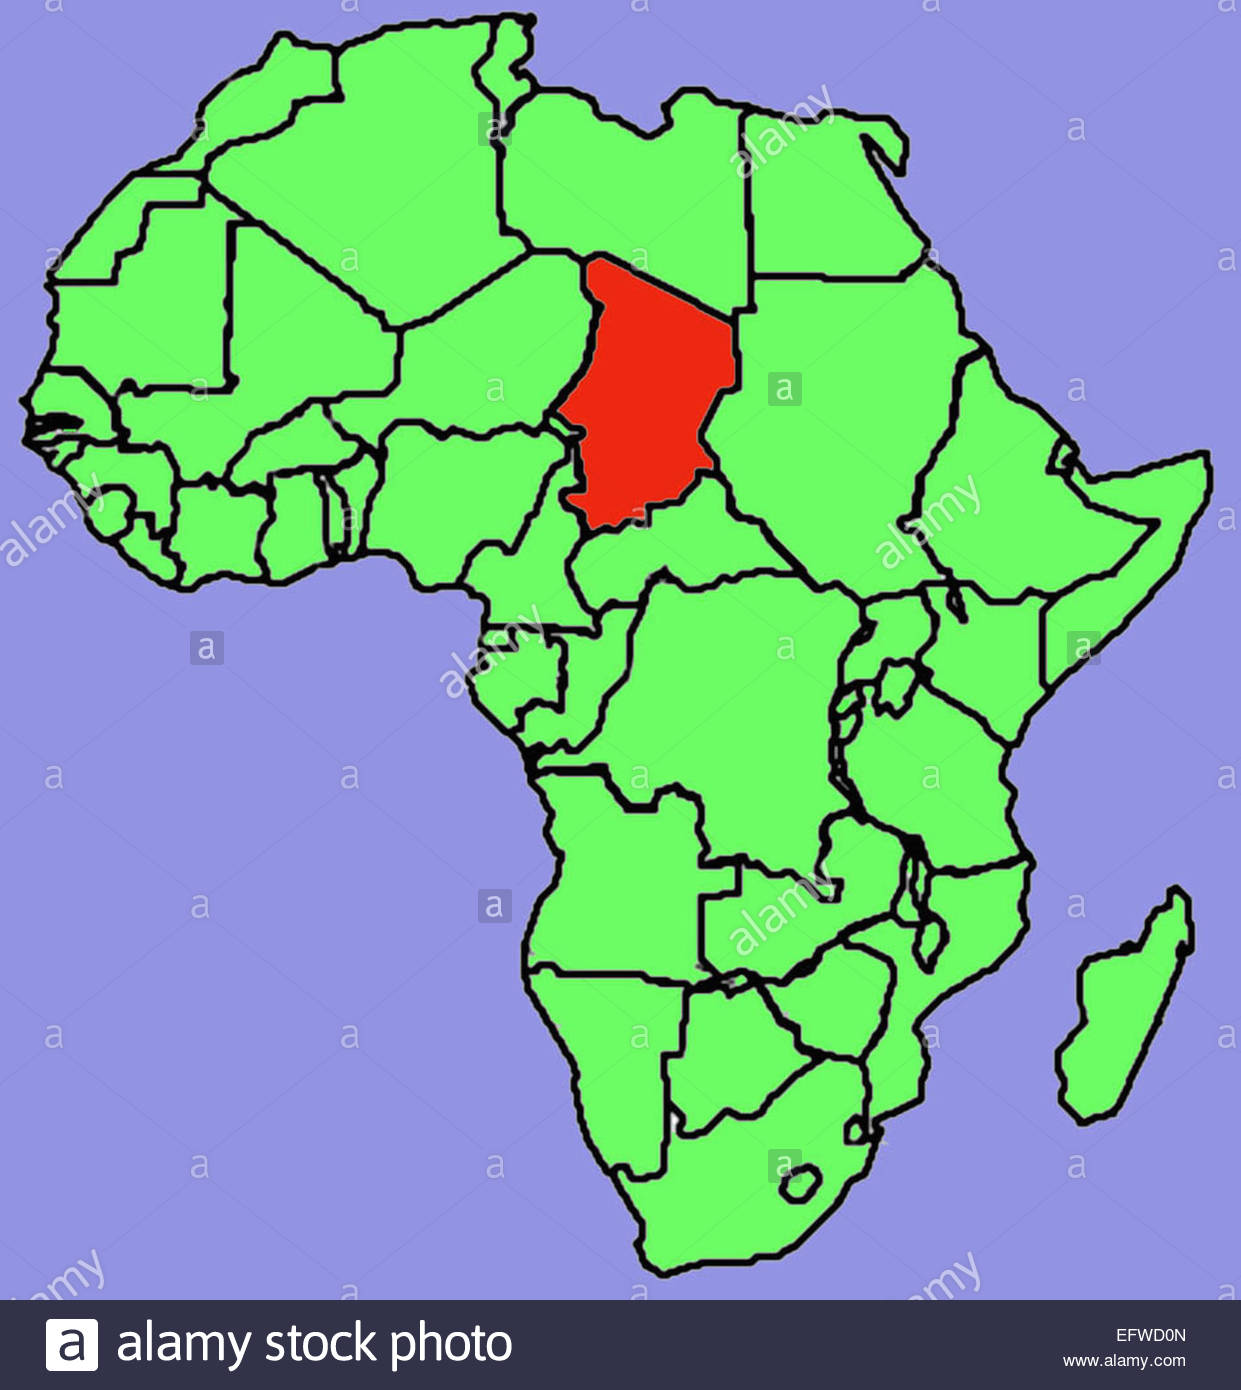 Green Map Of African Continent Red Area Is Chad Republic Of Chad - African continent map